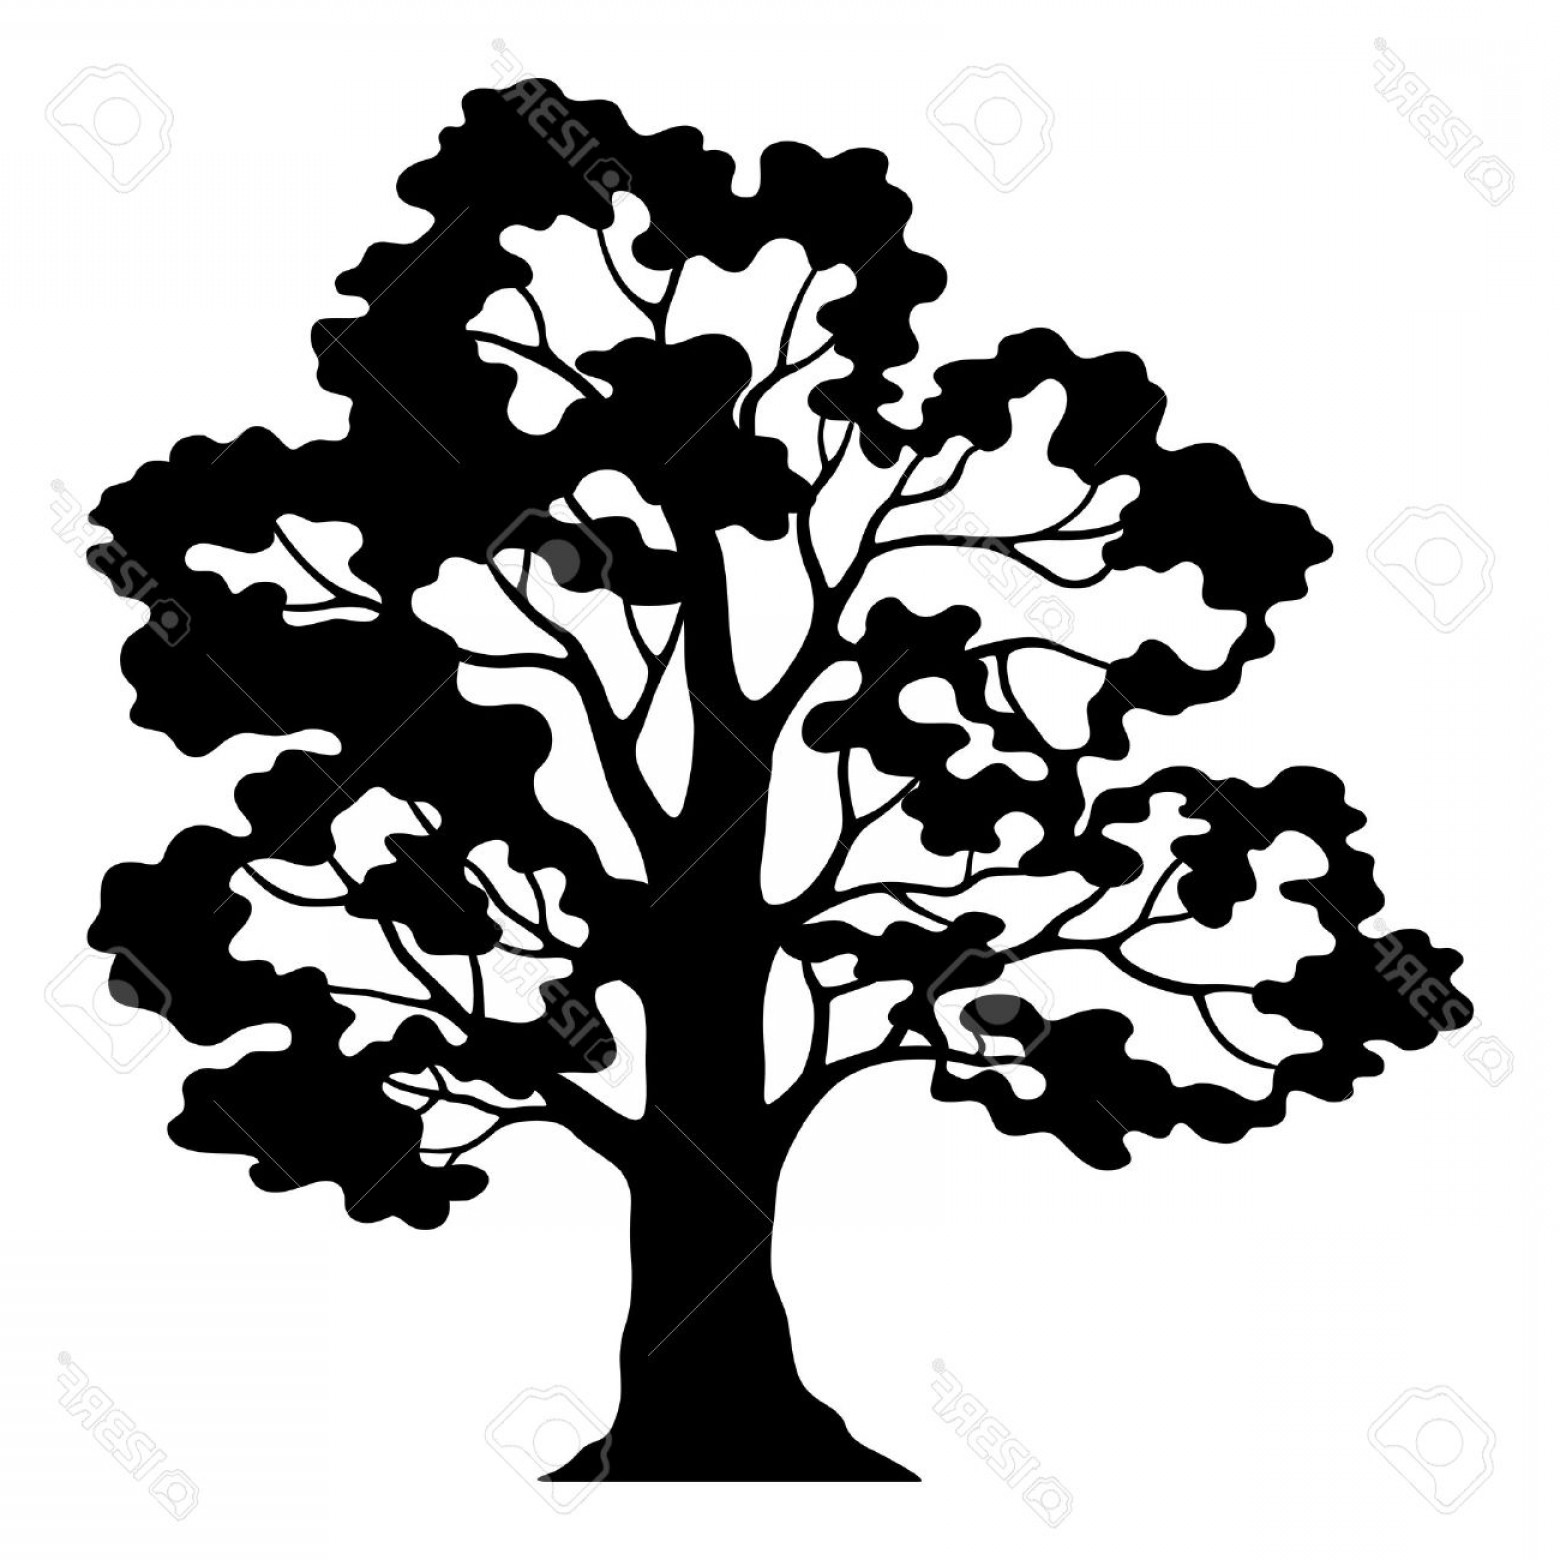 1560x1560 Photostock Vector Oak Tree Pictogram Black Silhouette And Contours